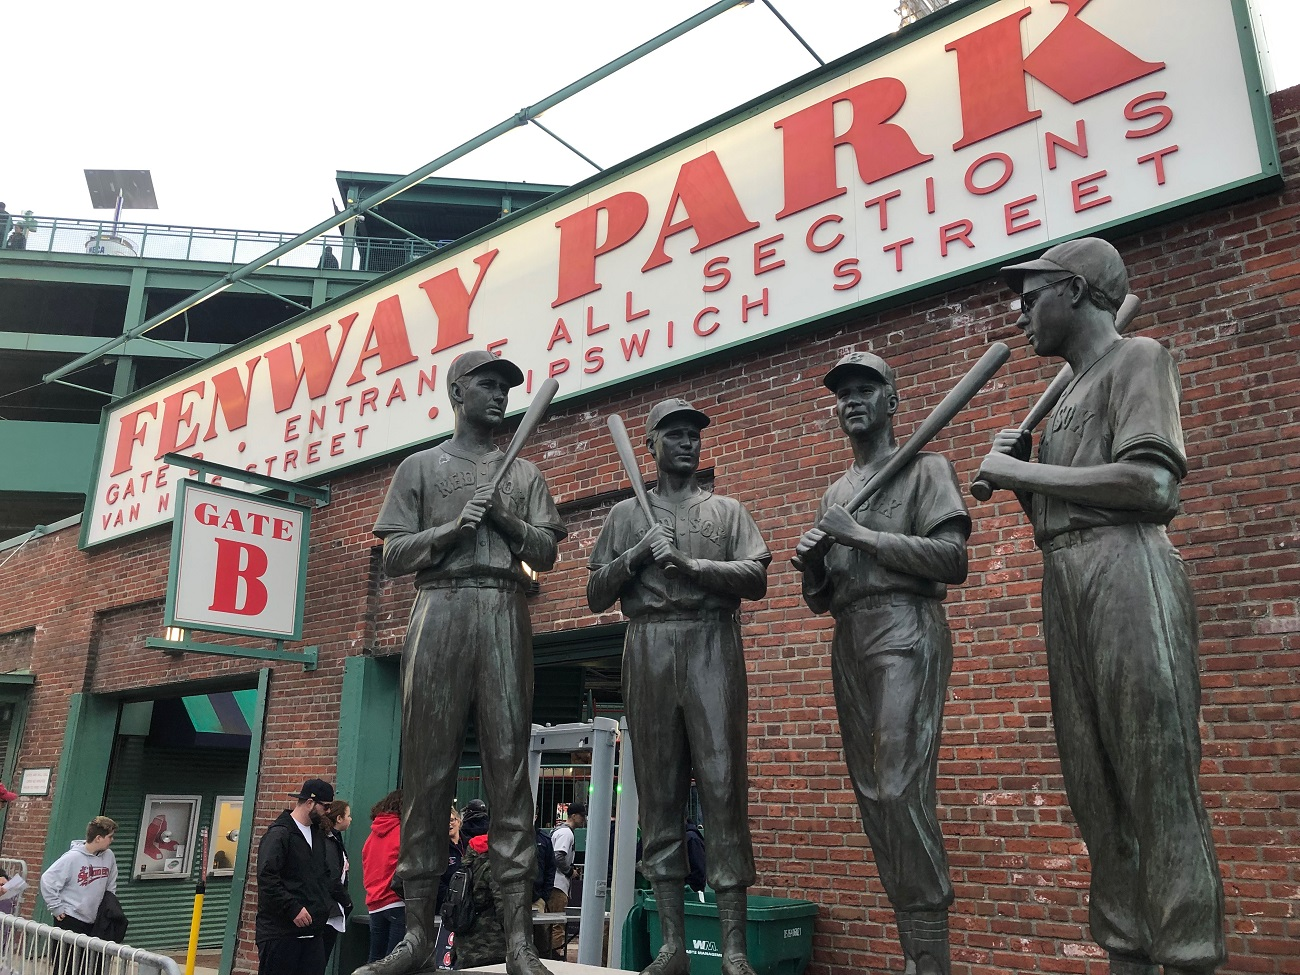 Teammate Statues outside of Fenway Park